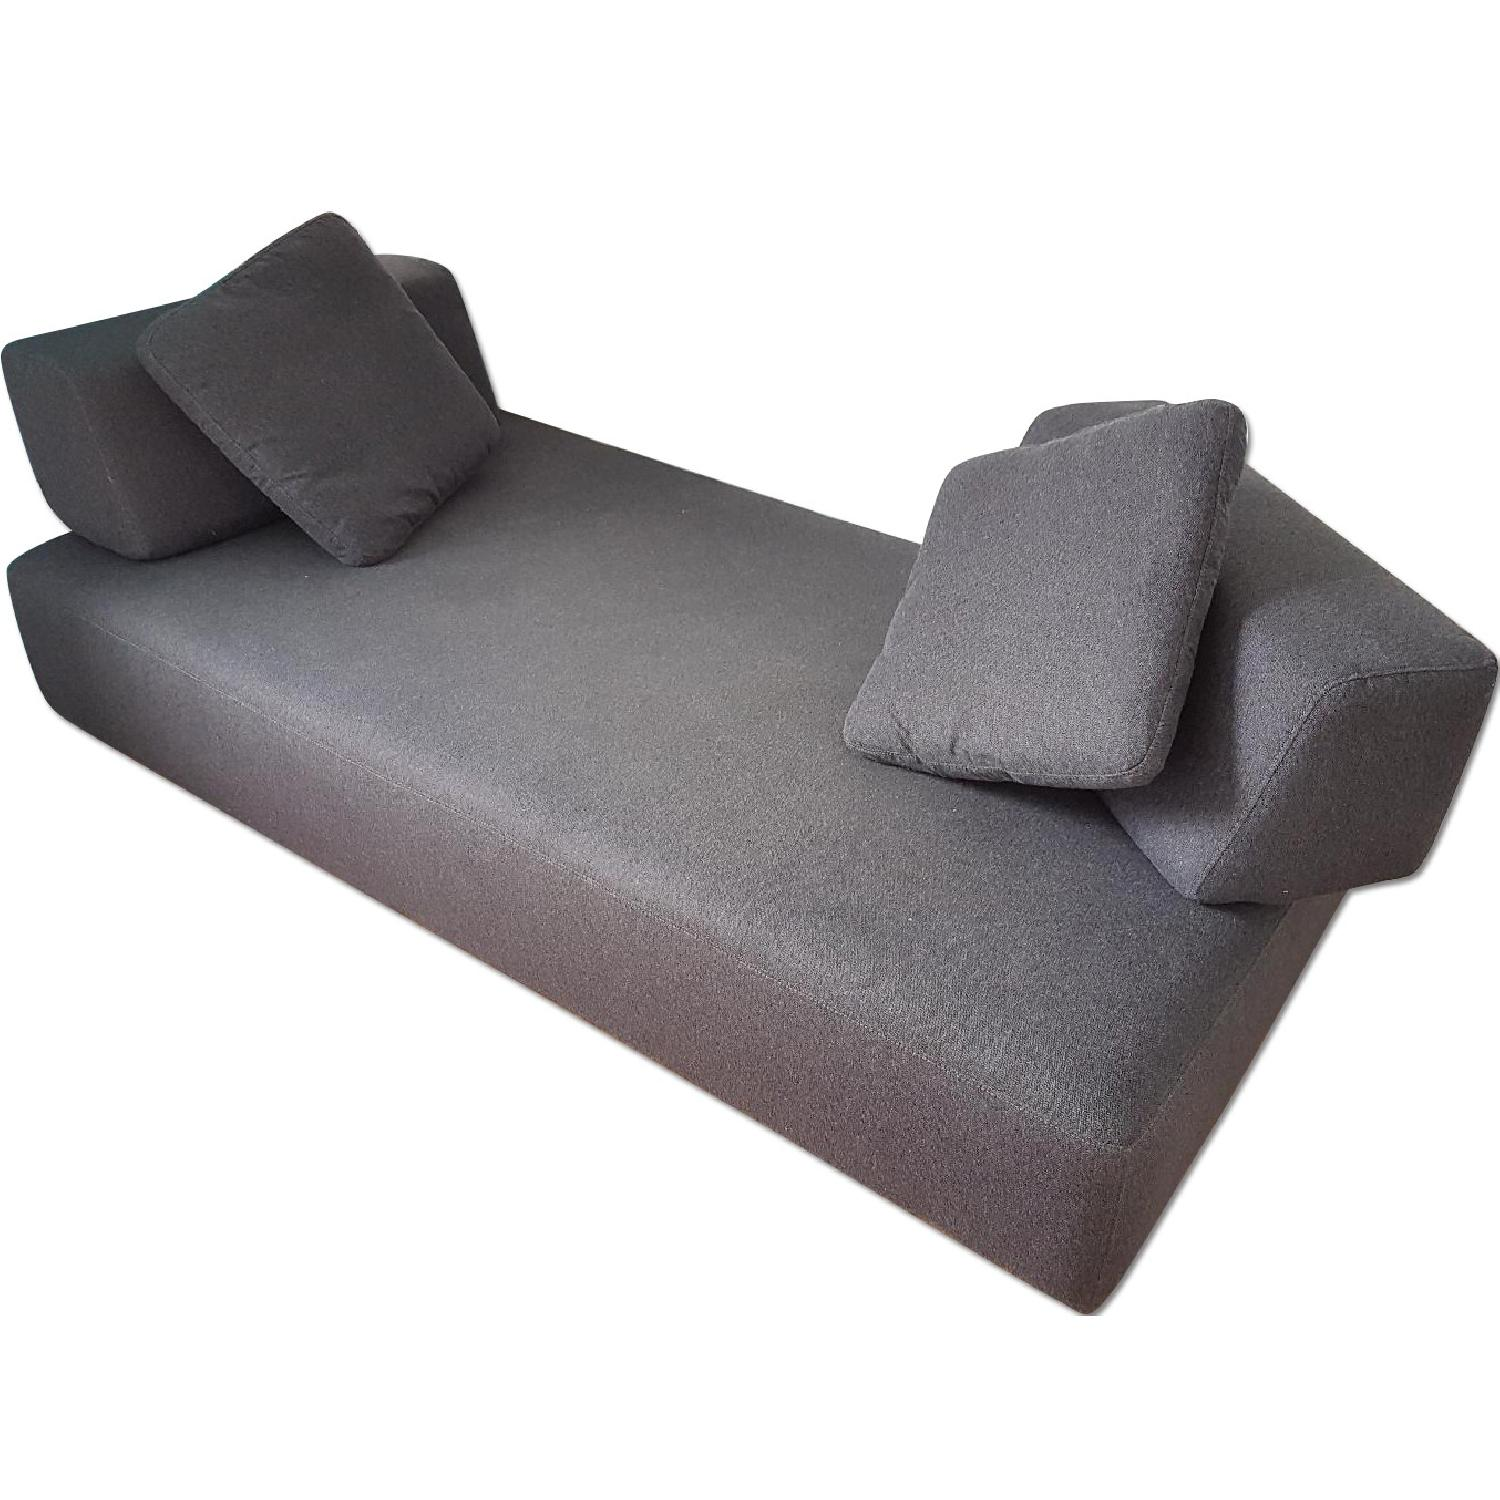 Mobilia Cross Functional Couch/Bed - image-0